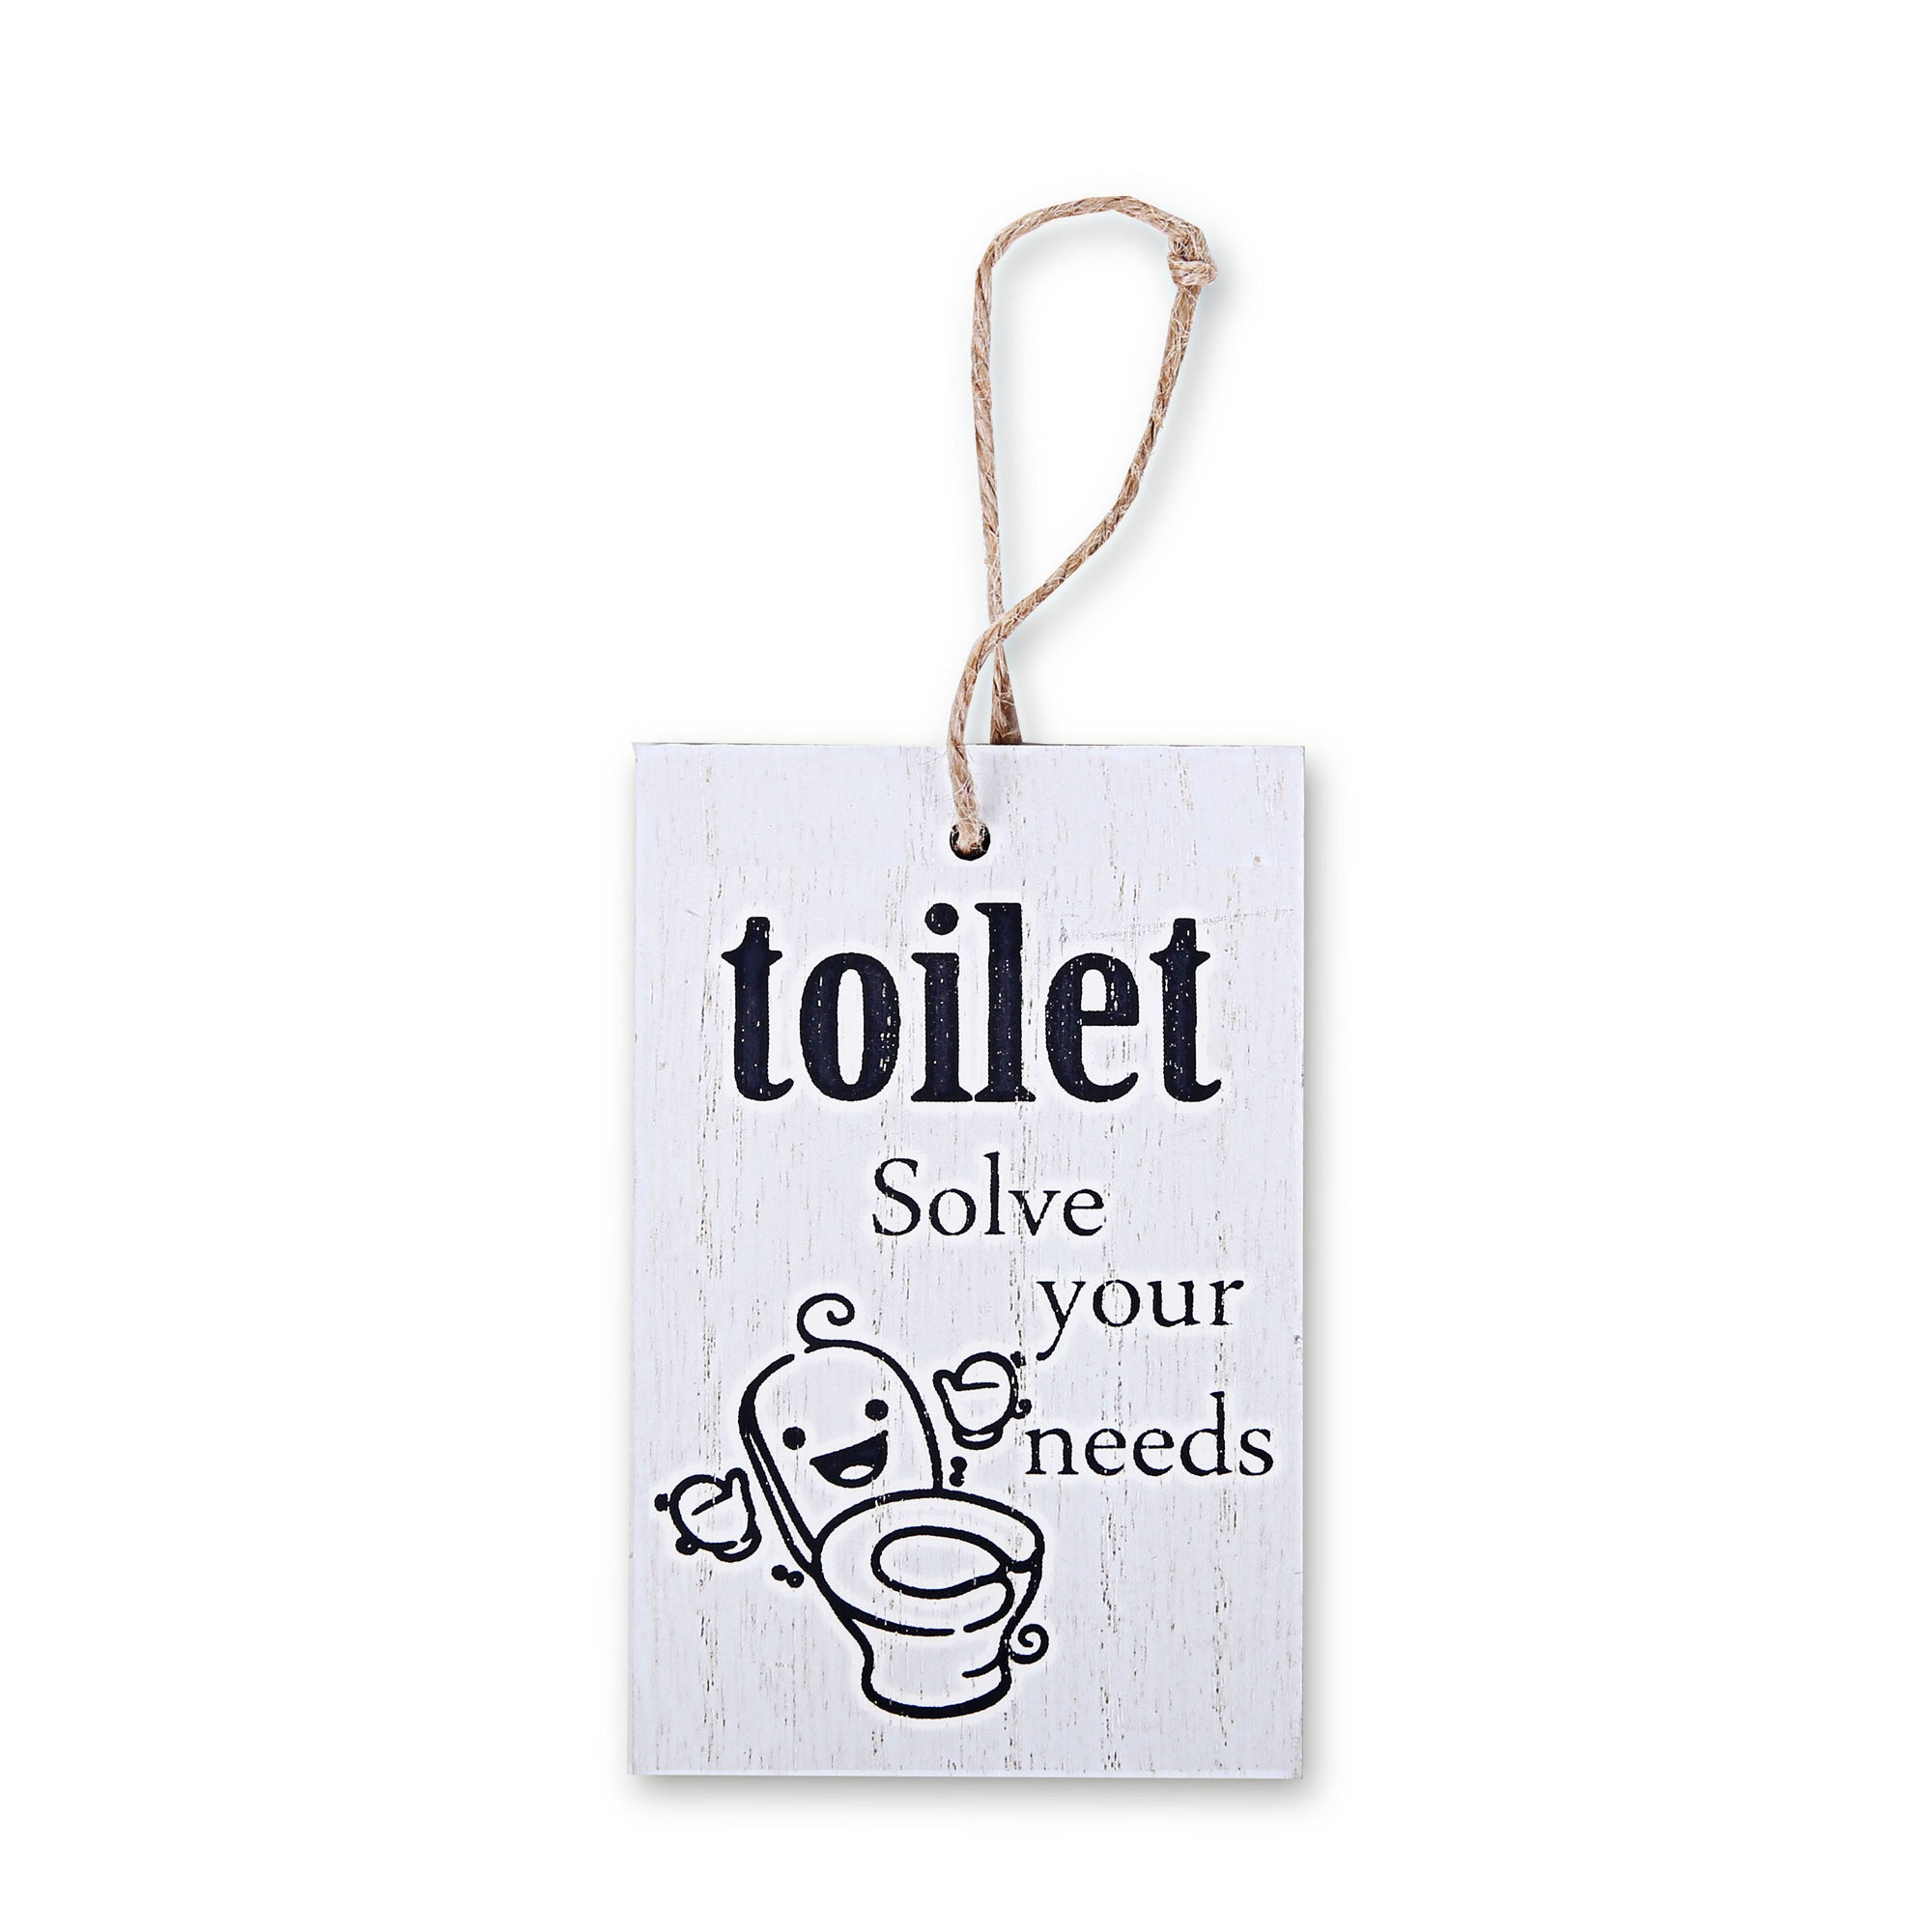 Toilet Wall Quotations (White)